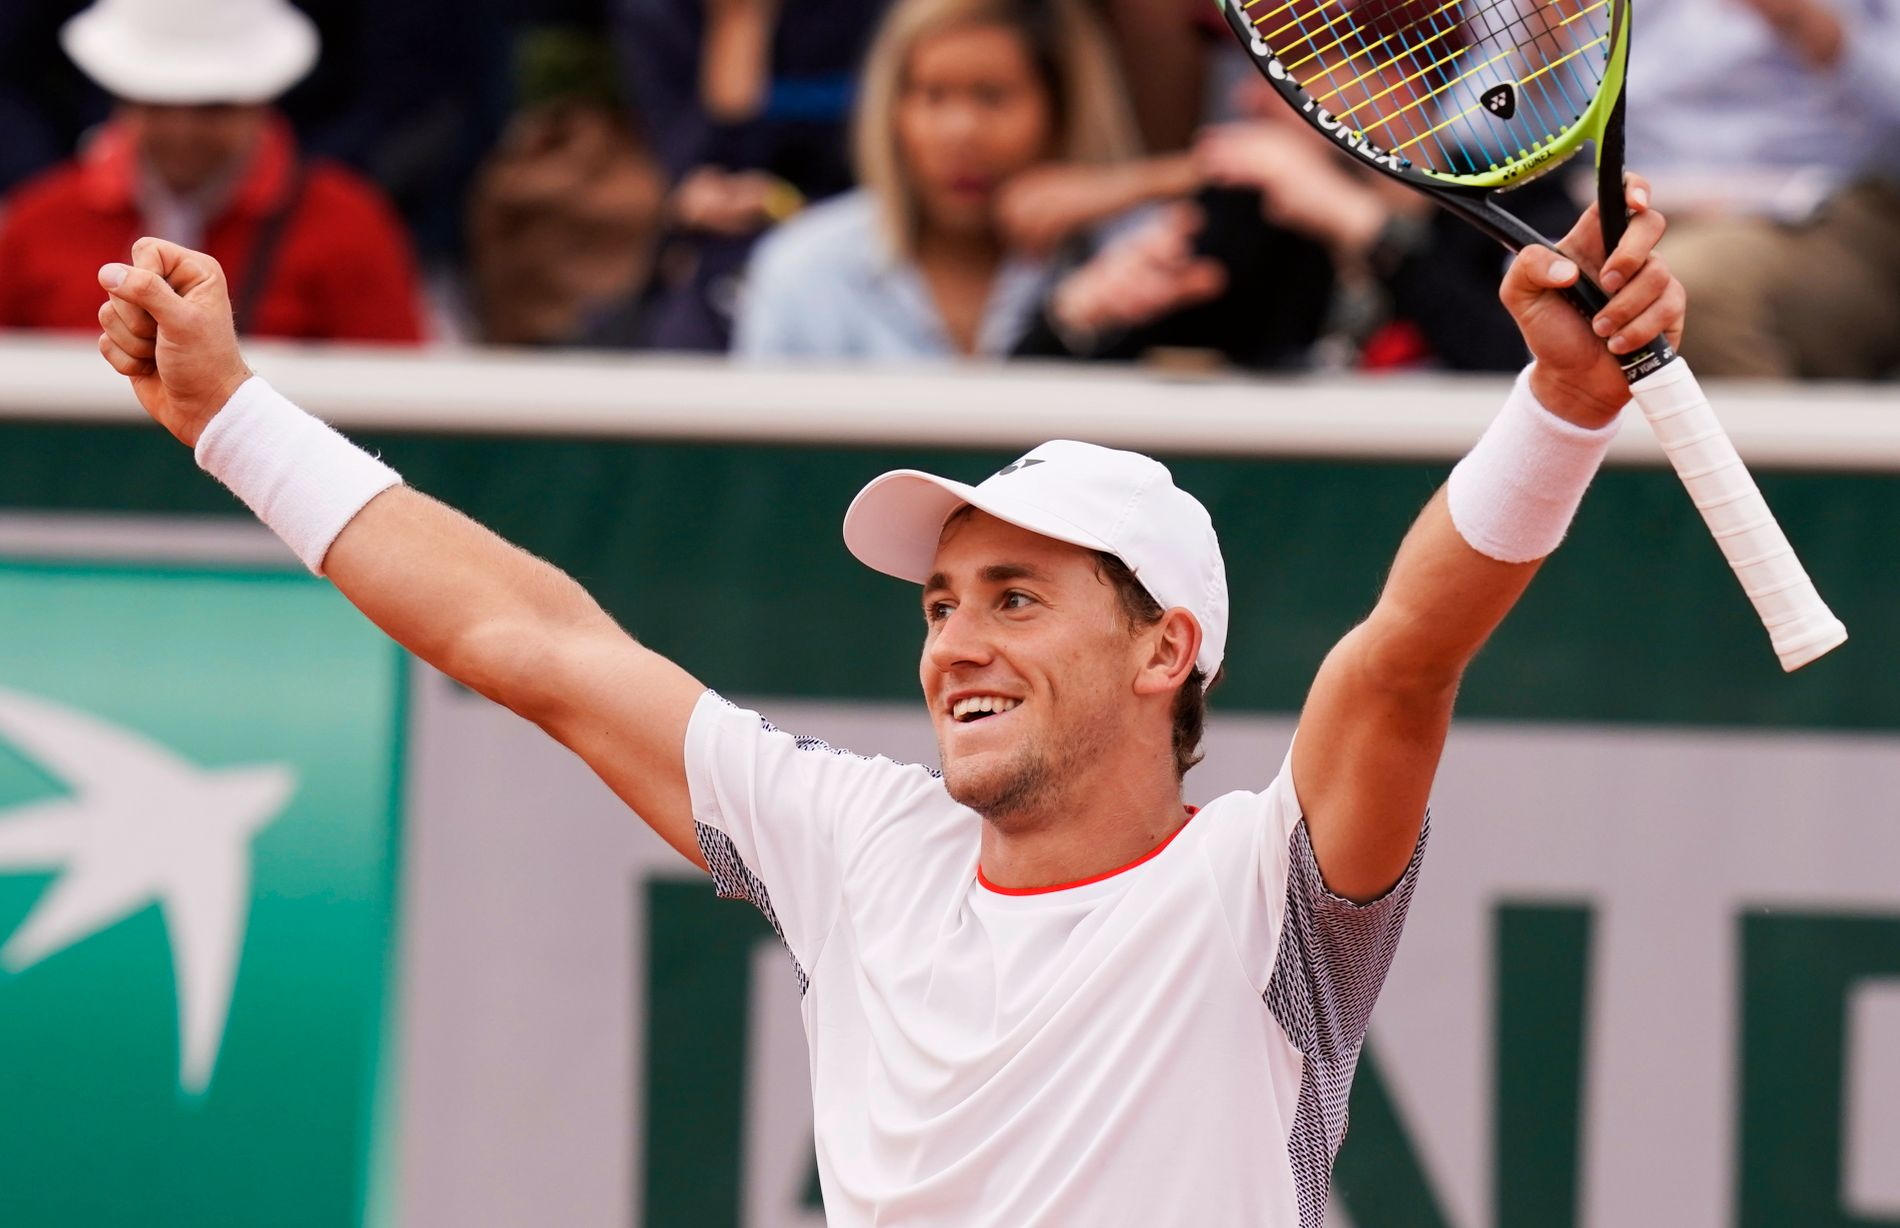 Casper Ruud jubler for seieren over Matteo Berrettini i 2. runde av French Open.